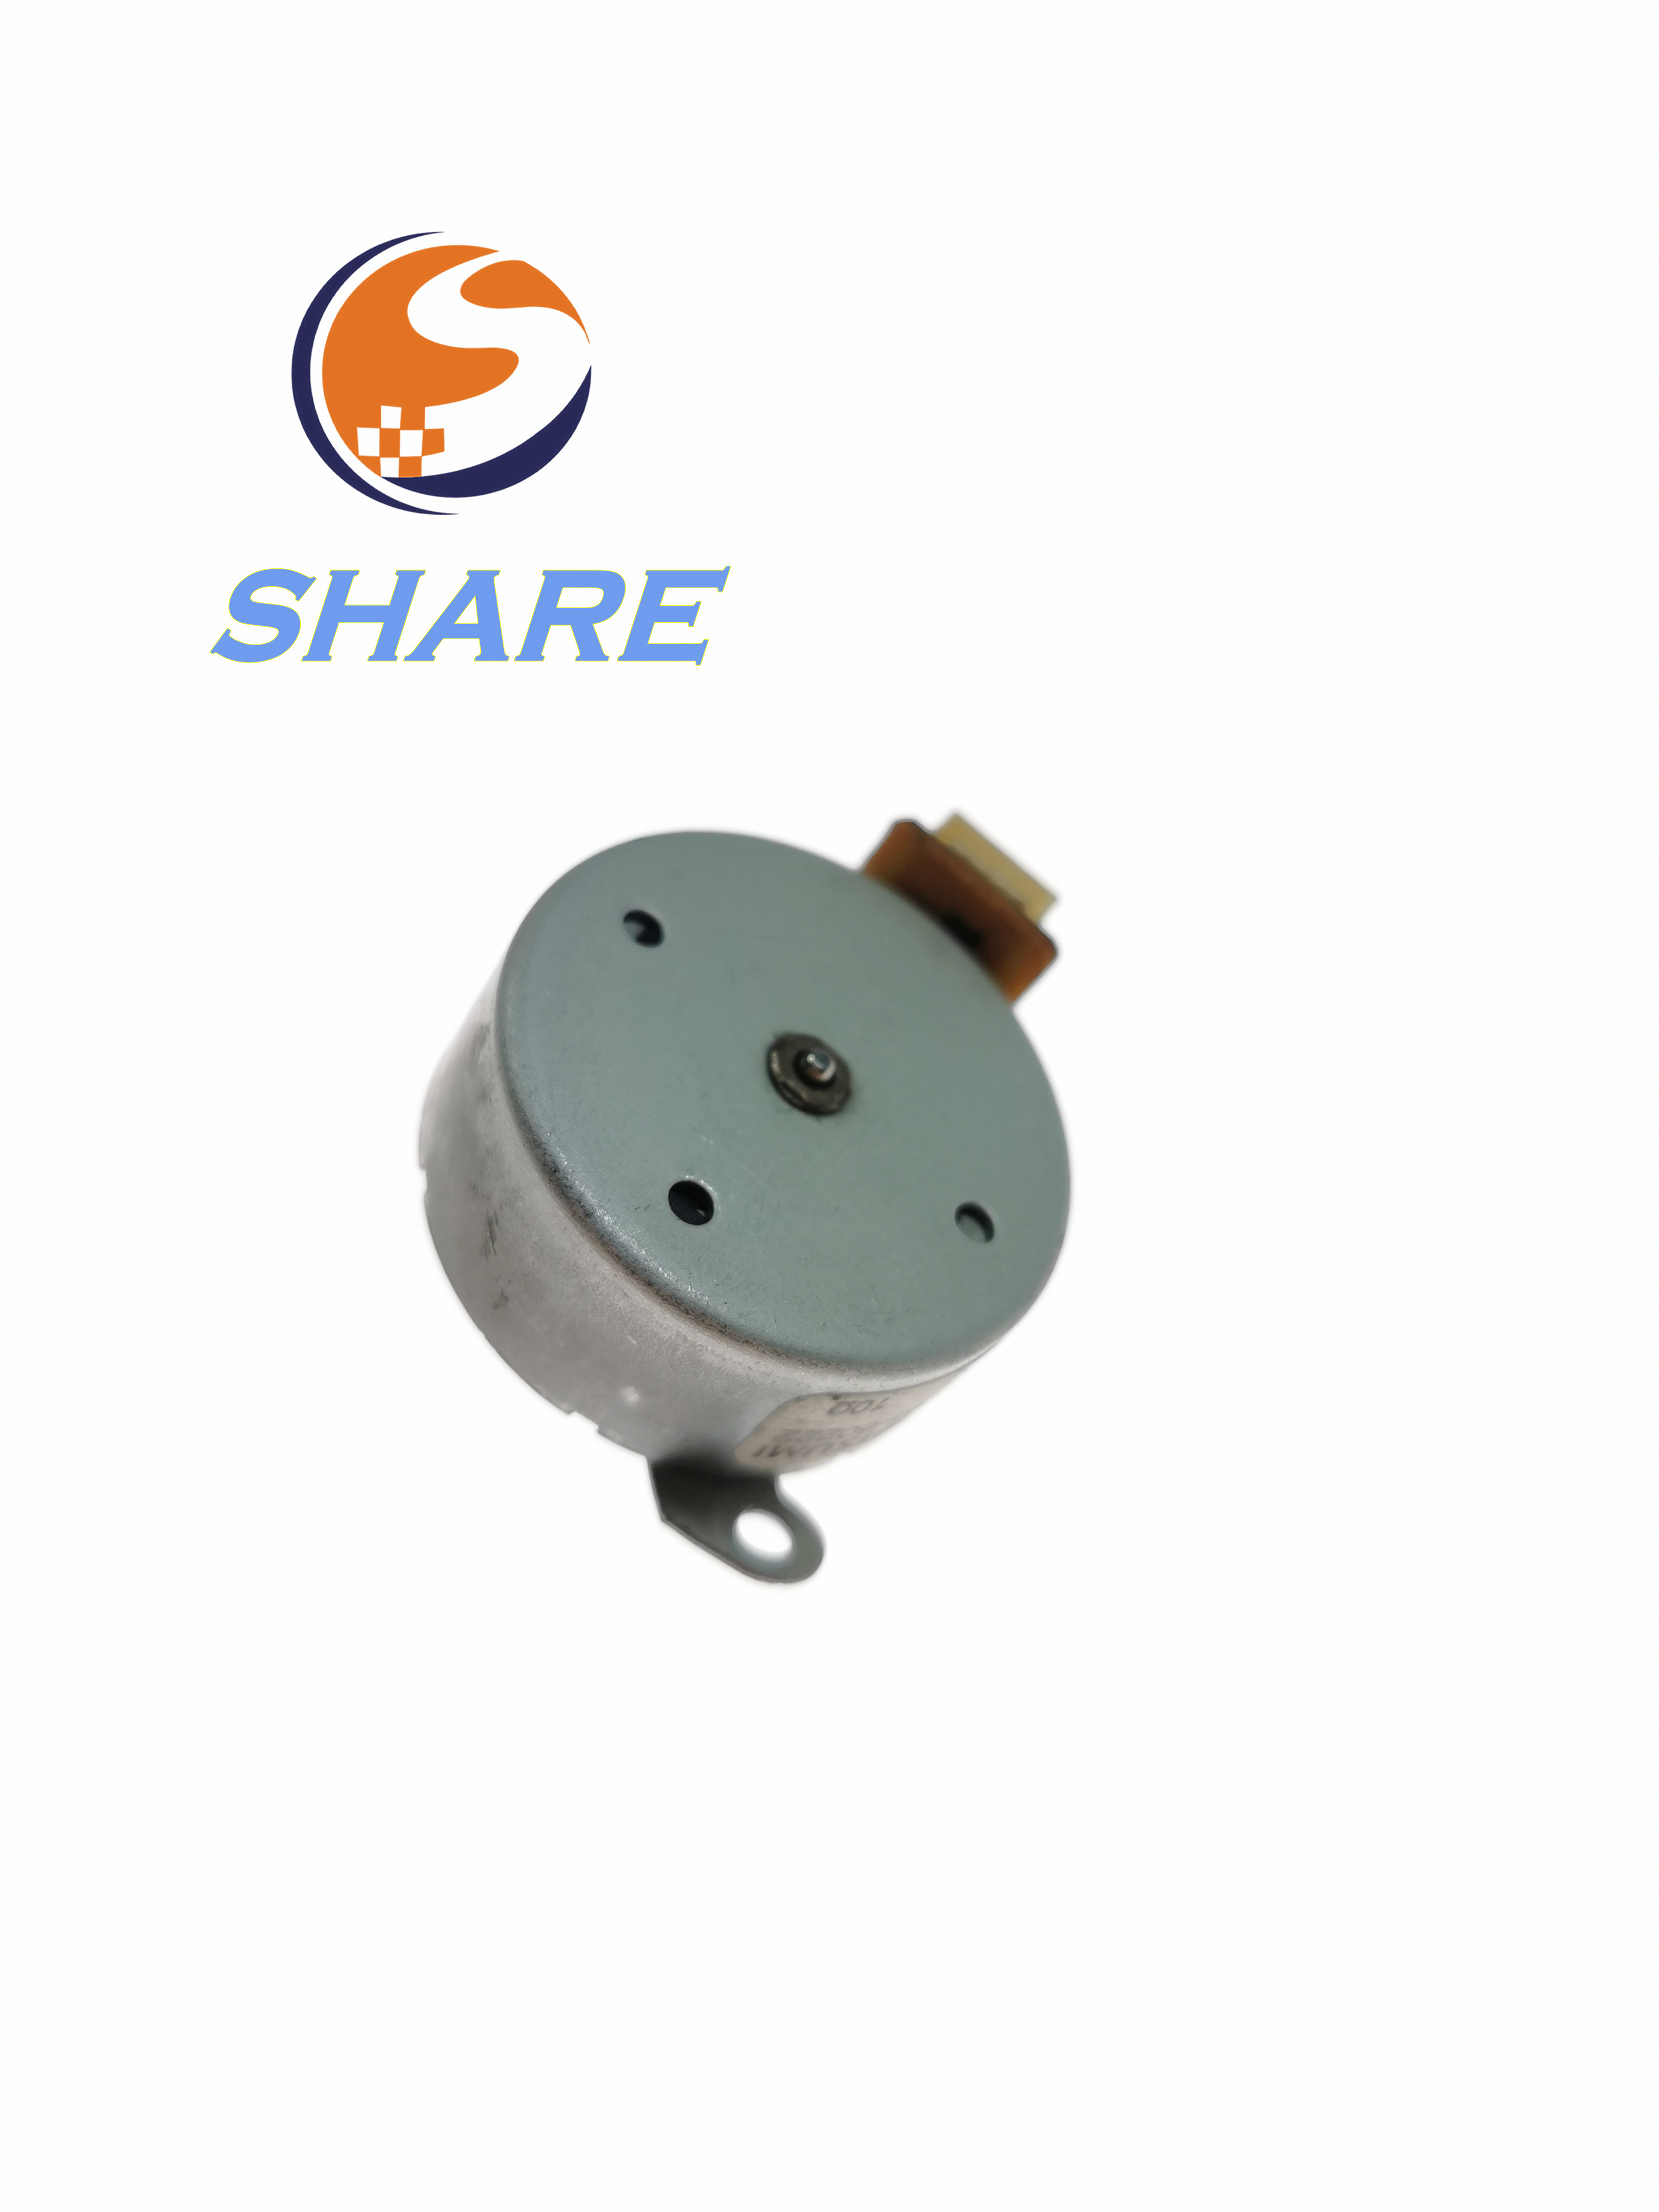 SHARE WORKING Q3948-60186 Q3066-60222 C6747-60005 Scanner Stepping Motor For HP CLJ2820 2830 2840 3390 3392 M2727 M1522 CM2320